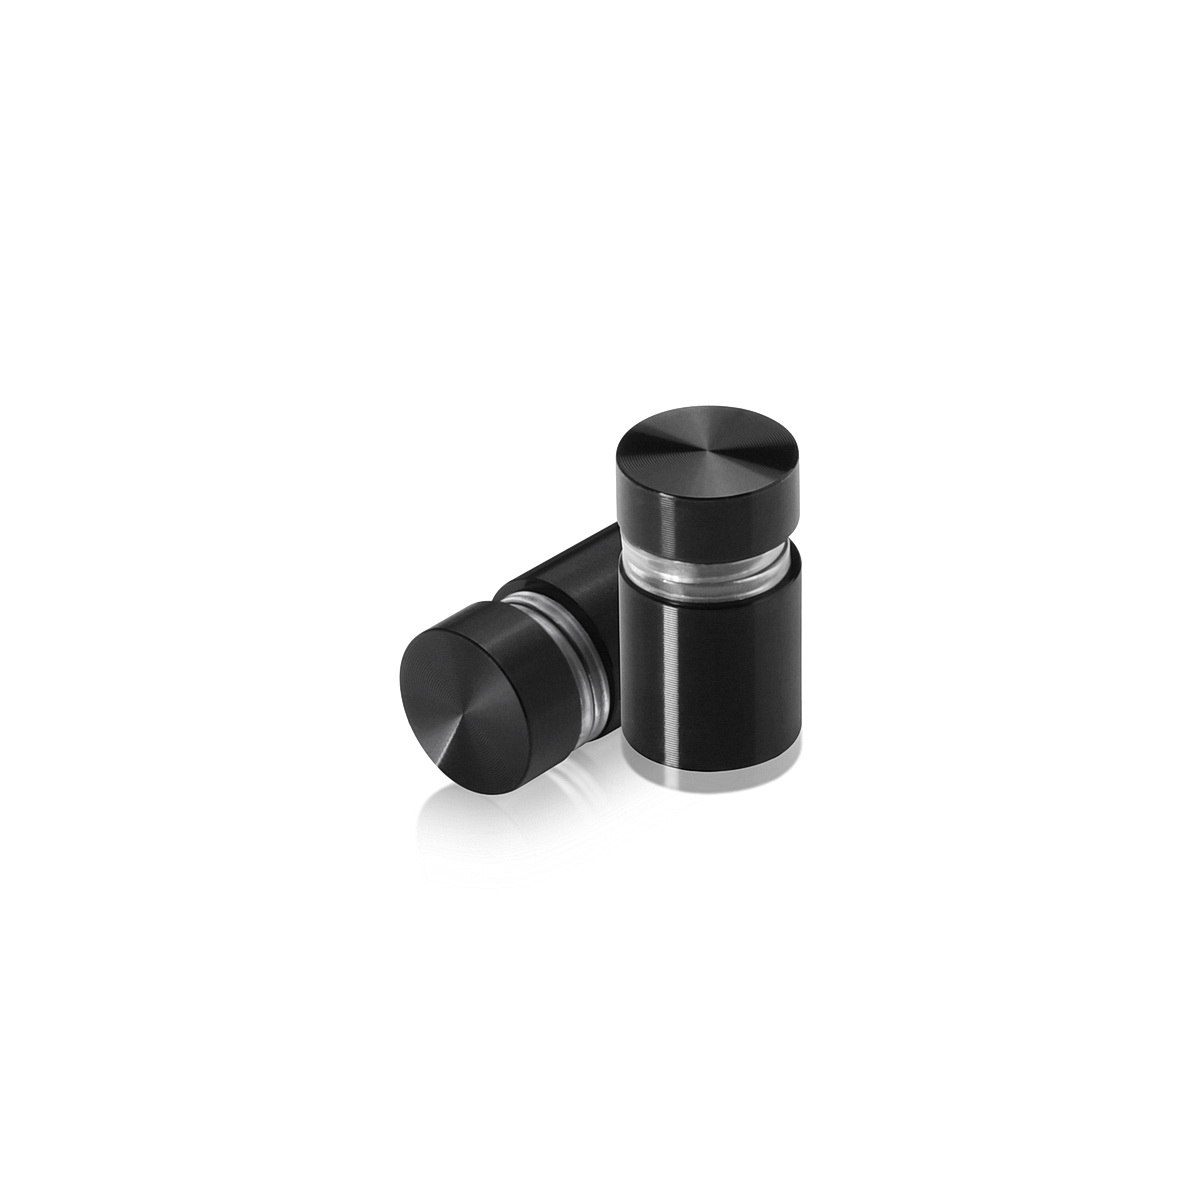 Tamper Proof Aluminum Flat Head Standoffs, Diameter: 1/2'', Standoff: 1/2'', Black Anodized Finish